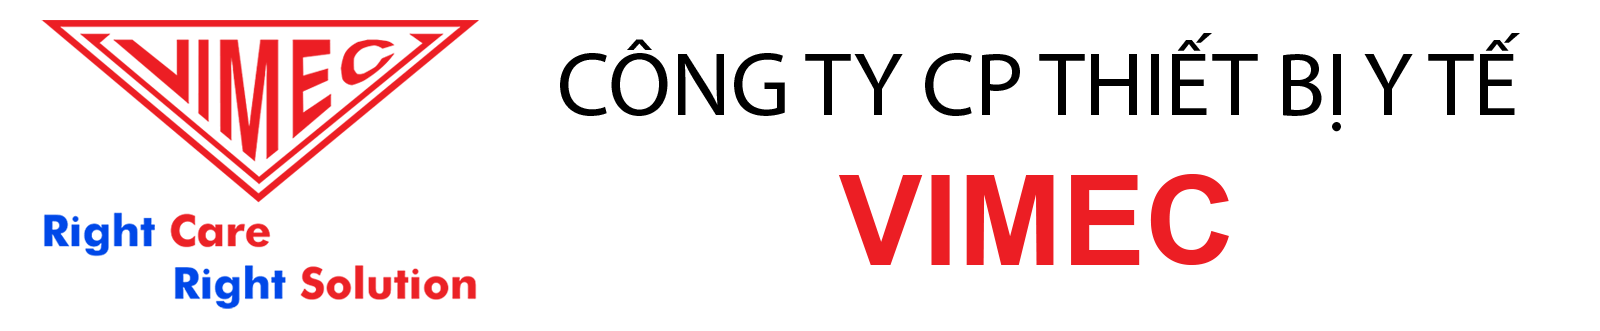 VIMEC Corporation